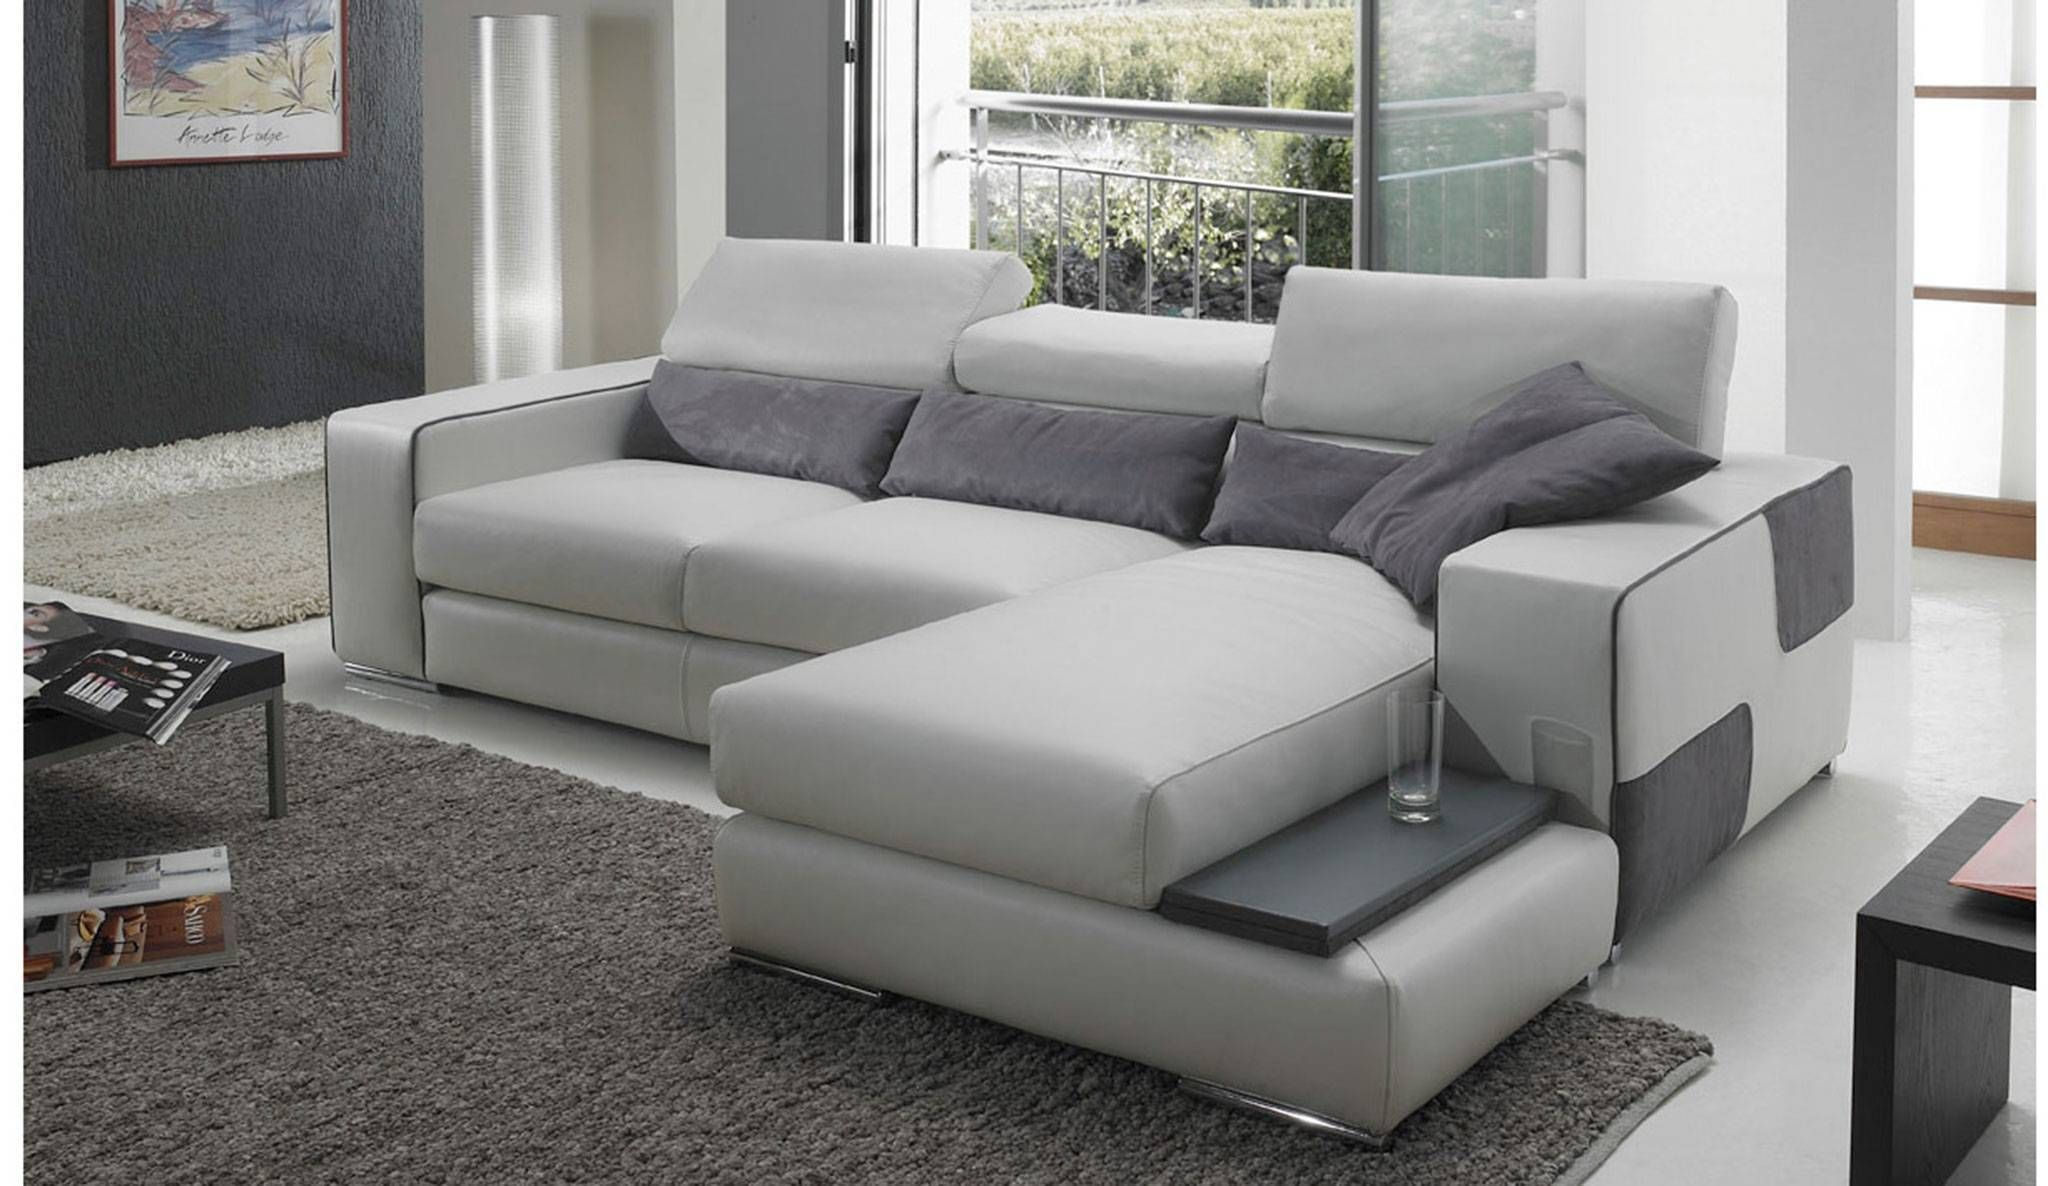 Canape Cuir Pas Cher Canape Design Pas Cher Tissu In 2020 Home